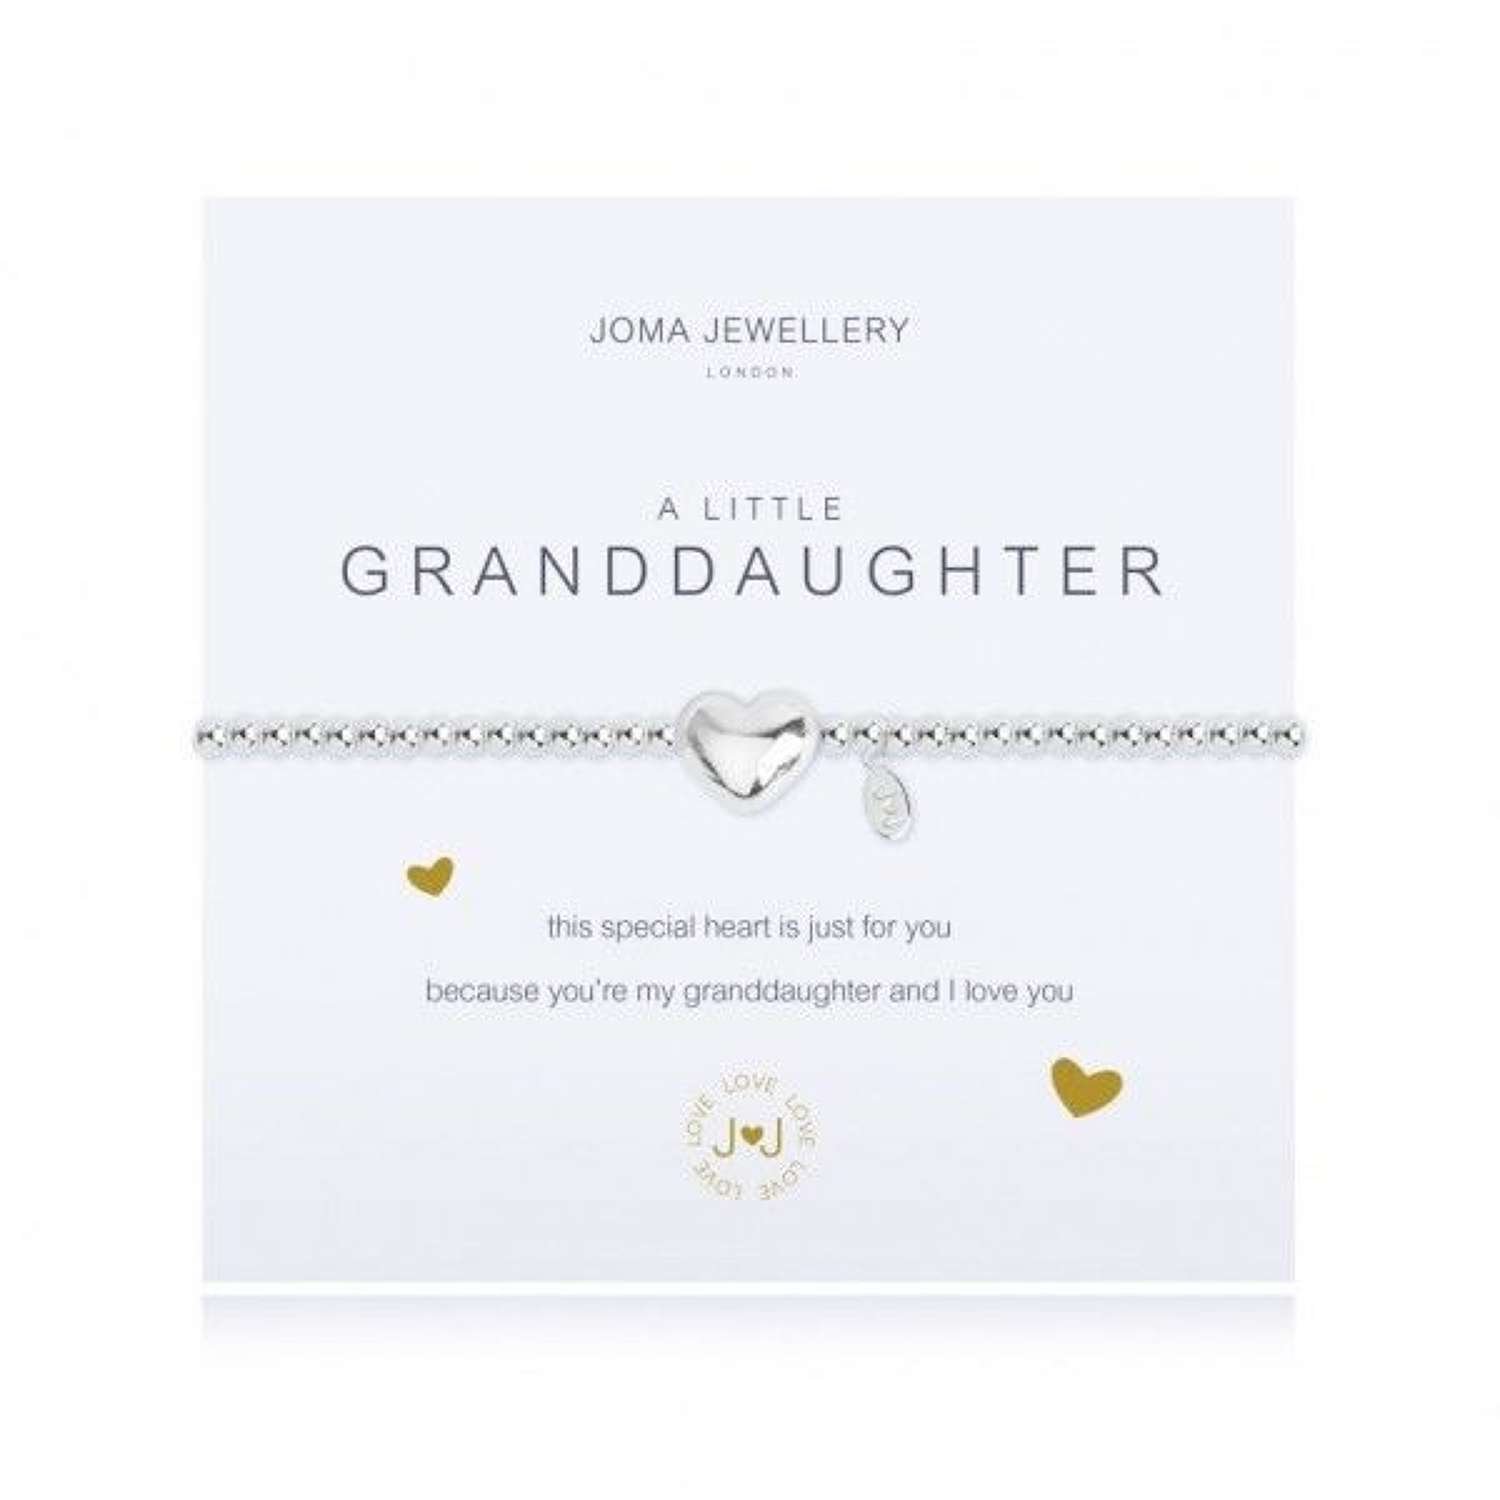 Joma Jewellery - A Little- Granddaughter- silver plated heart charm